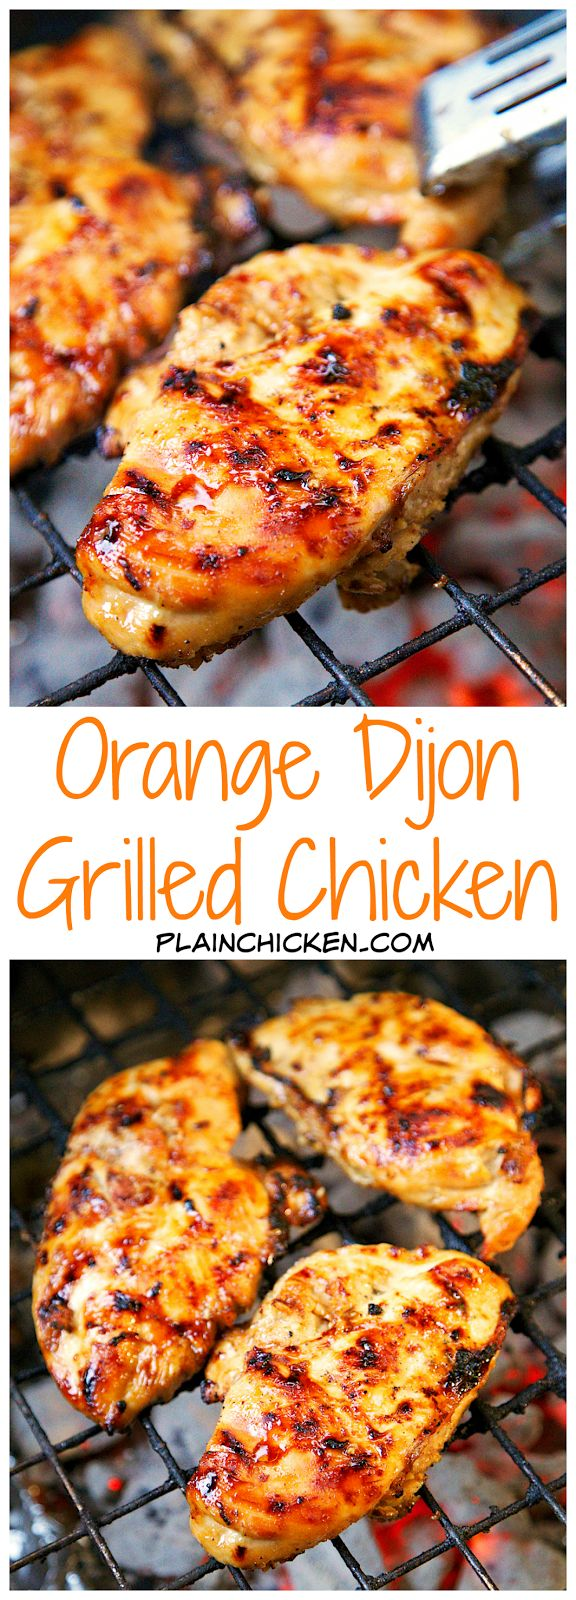 Orange Dijon Grilled Chicken Recipe: Chicken marinated in fresh orange juice, brown sugar, dijon mustard, garlic and apple cider vinegar - fantastic flavor combination! So versatile! Great on its own or in quesadillas, tacos, or on top of a salad.